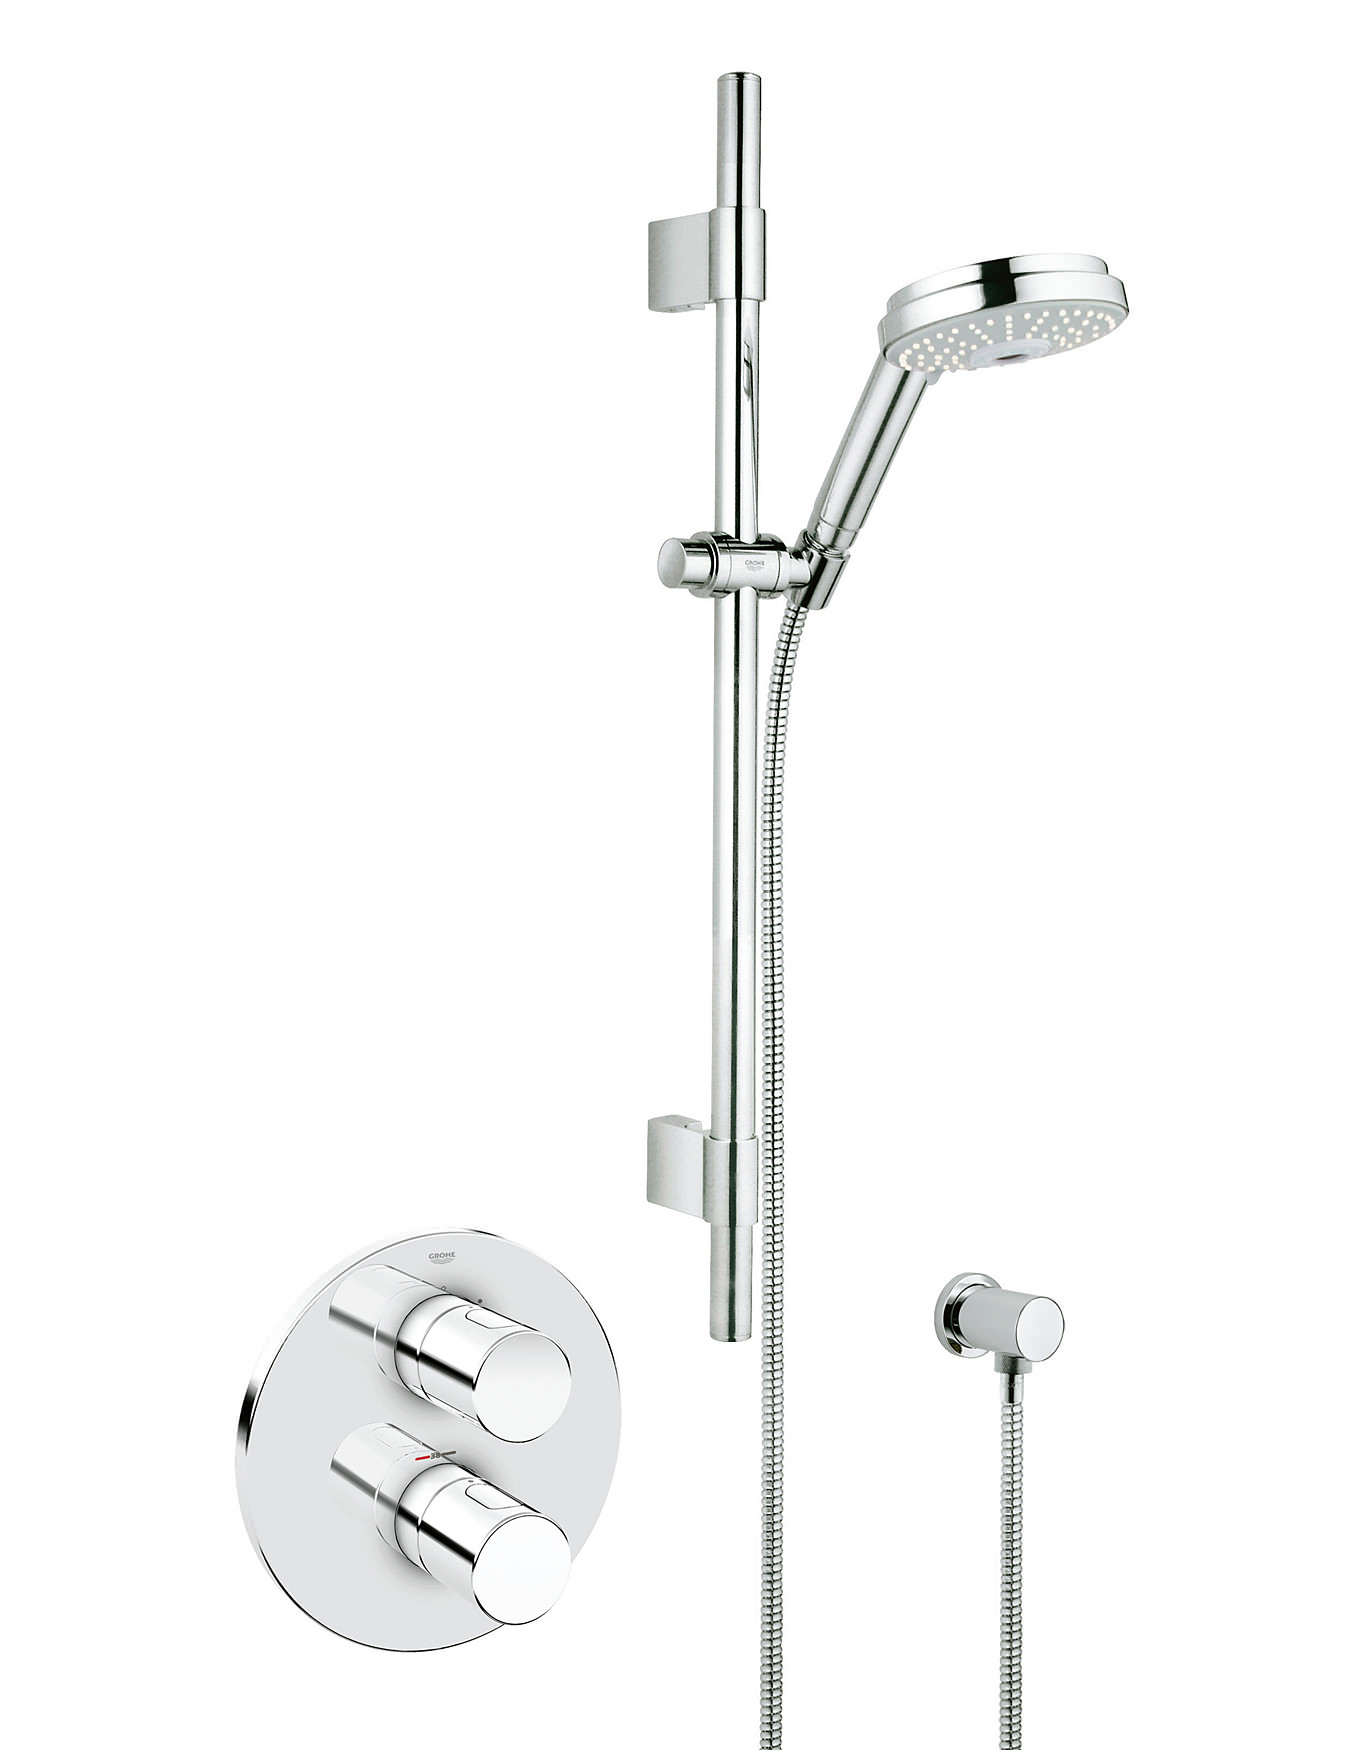 grohe grohtherm 3000 cosmo biv thermostatic shower mixer with kit 34278000. Black Bedroom Furniture Sets. Home Design Ideas